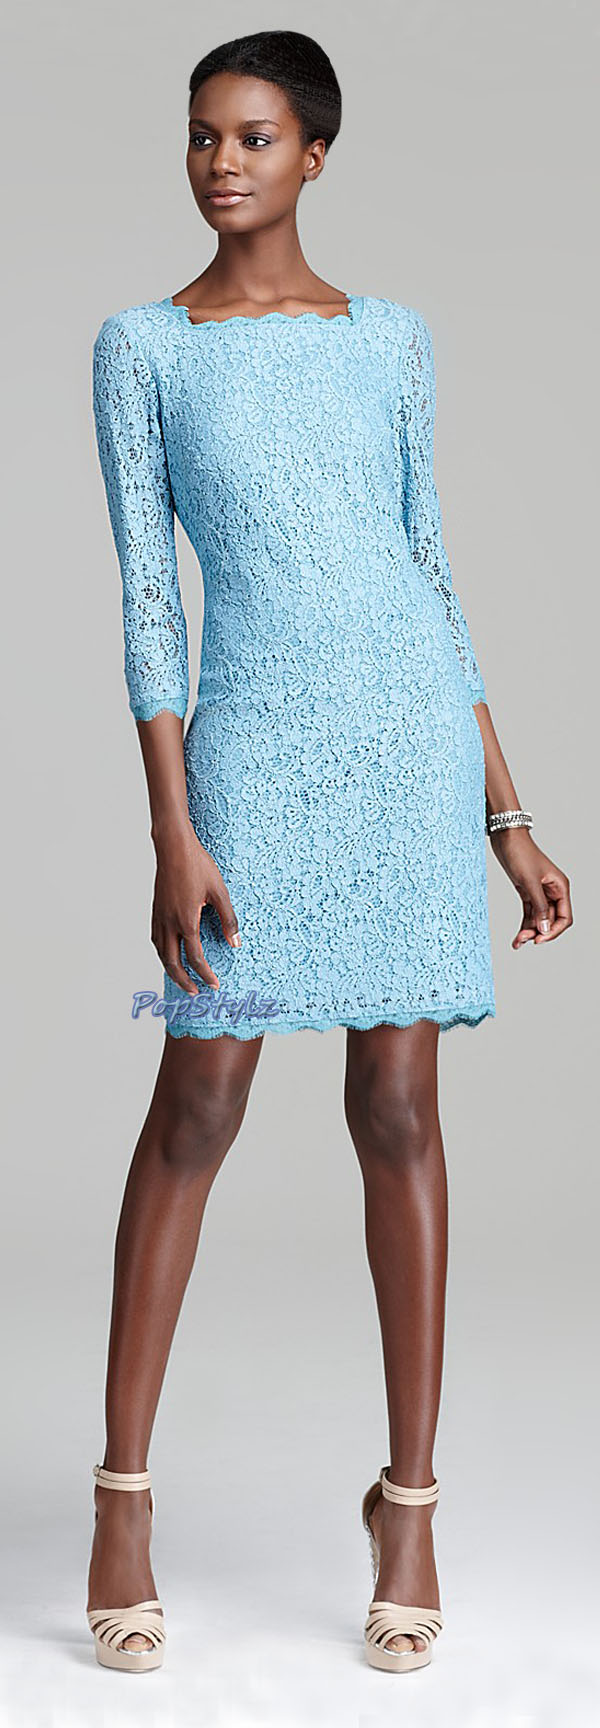 Adrianna Papell Turquoise Dress